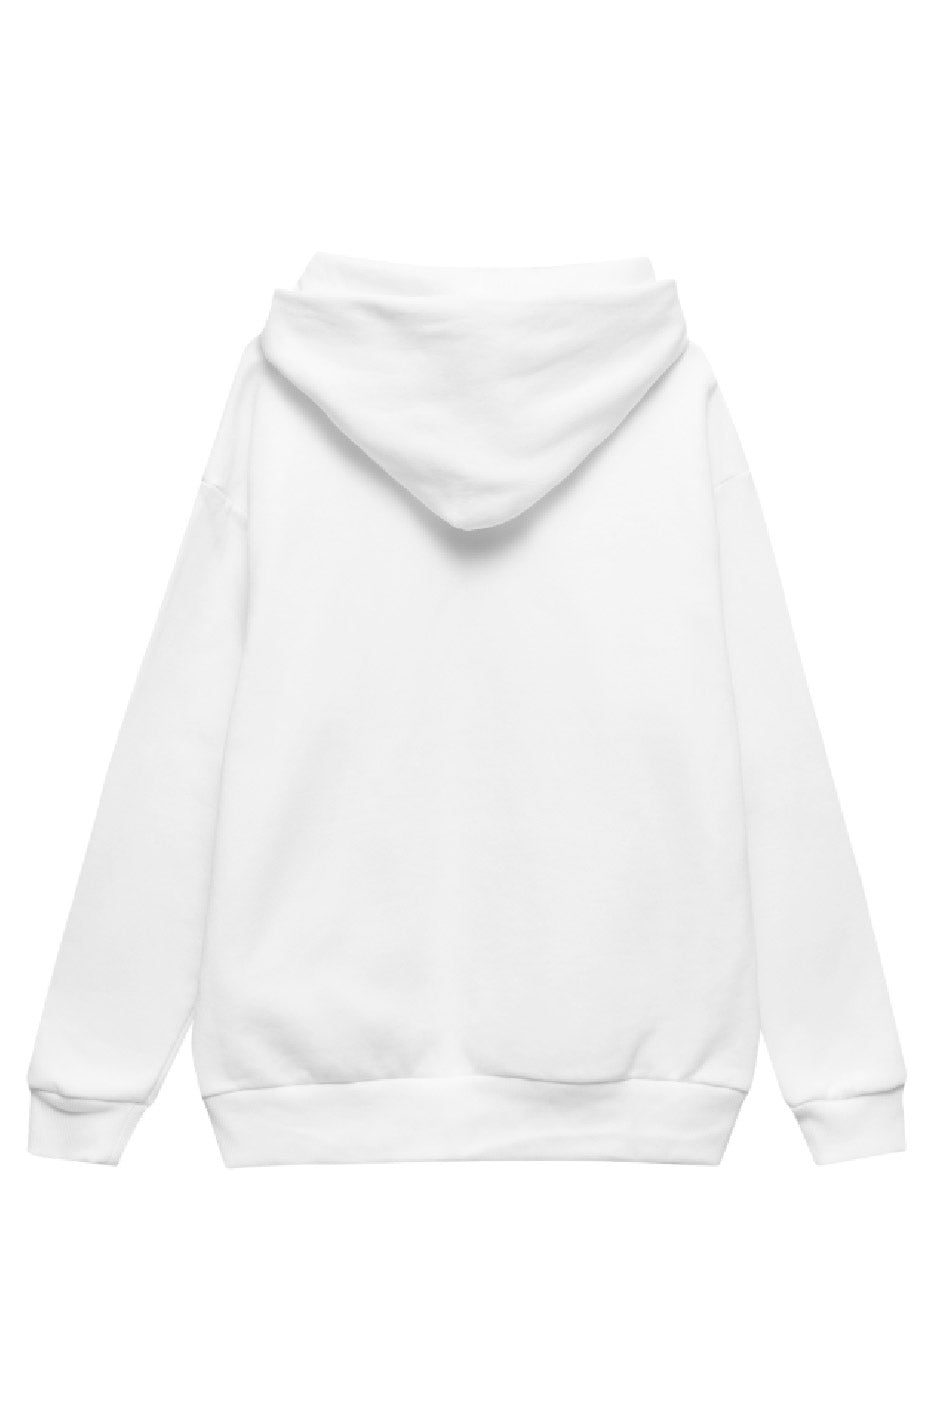 Story of Lola Skully Hoodie - White